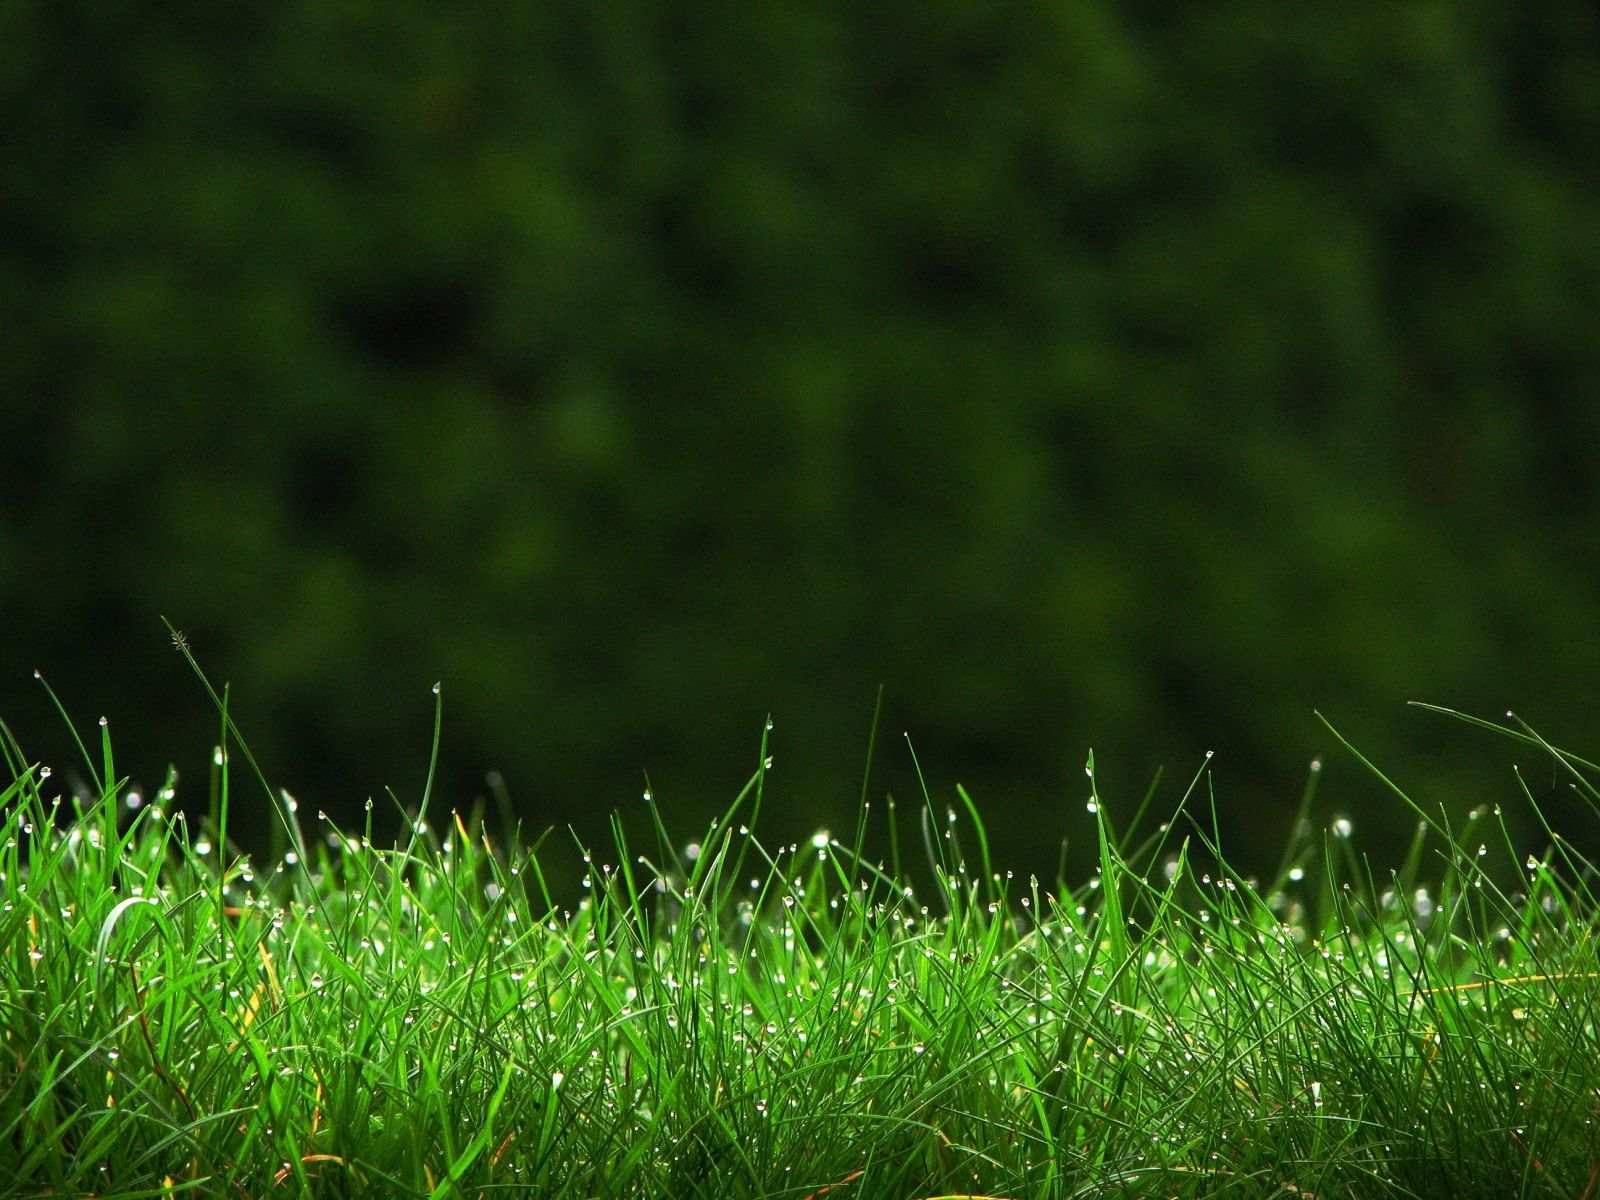 Nature Wallpapers / Grass Wallpapers Download HD Wallpapers and ...